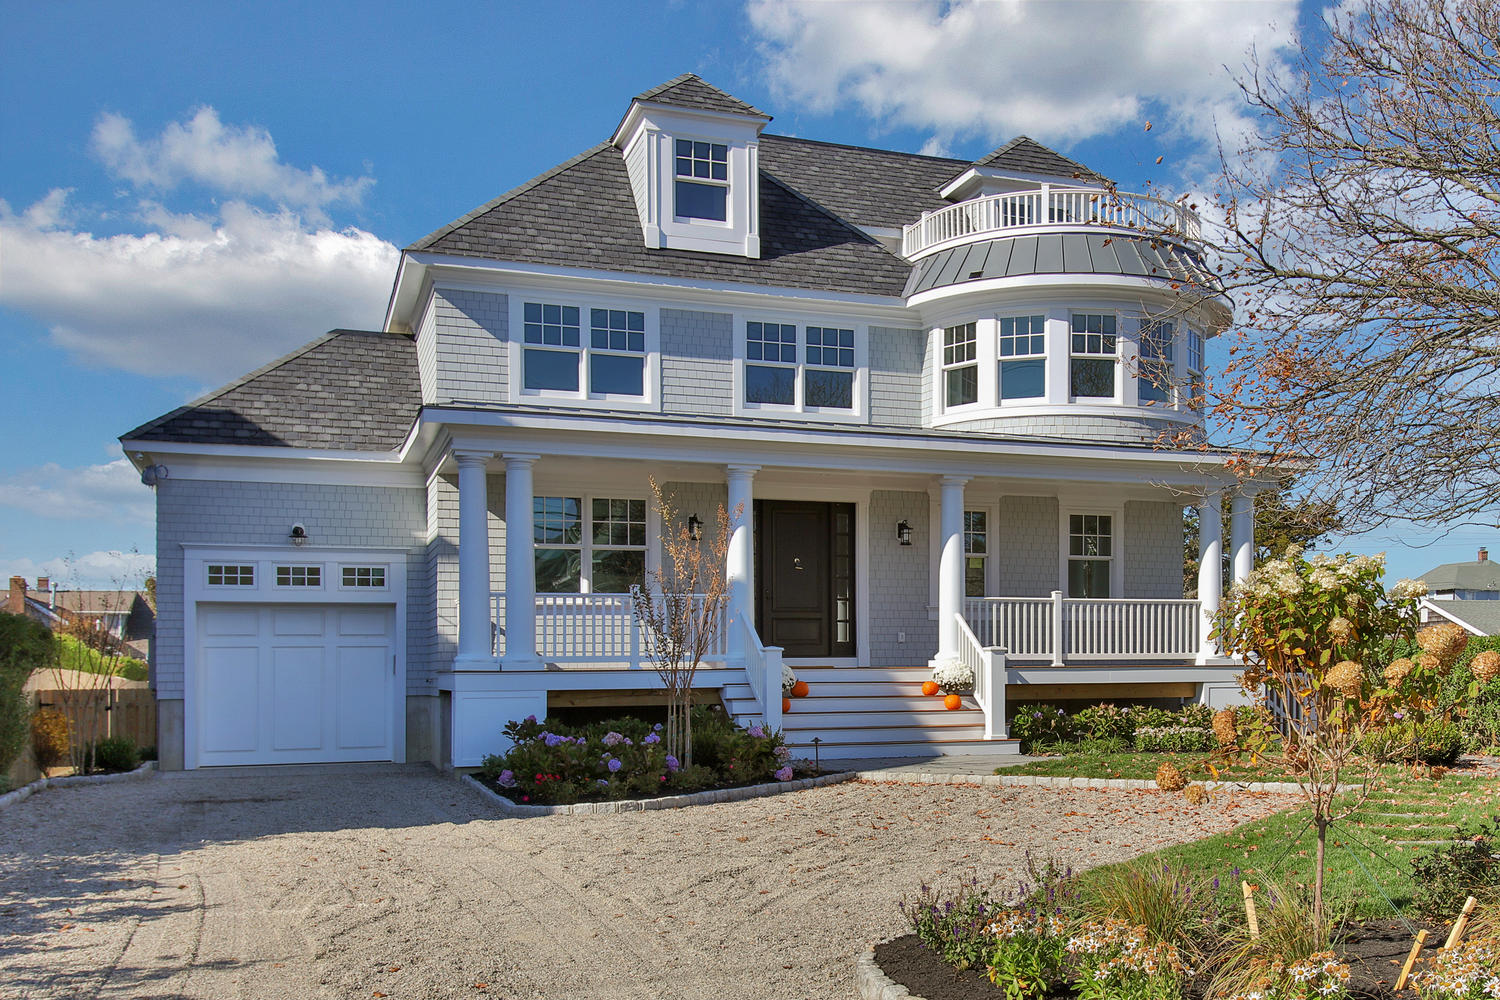 Property For Sale at Exquisite Architecture, Superior Construction